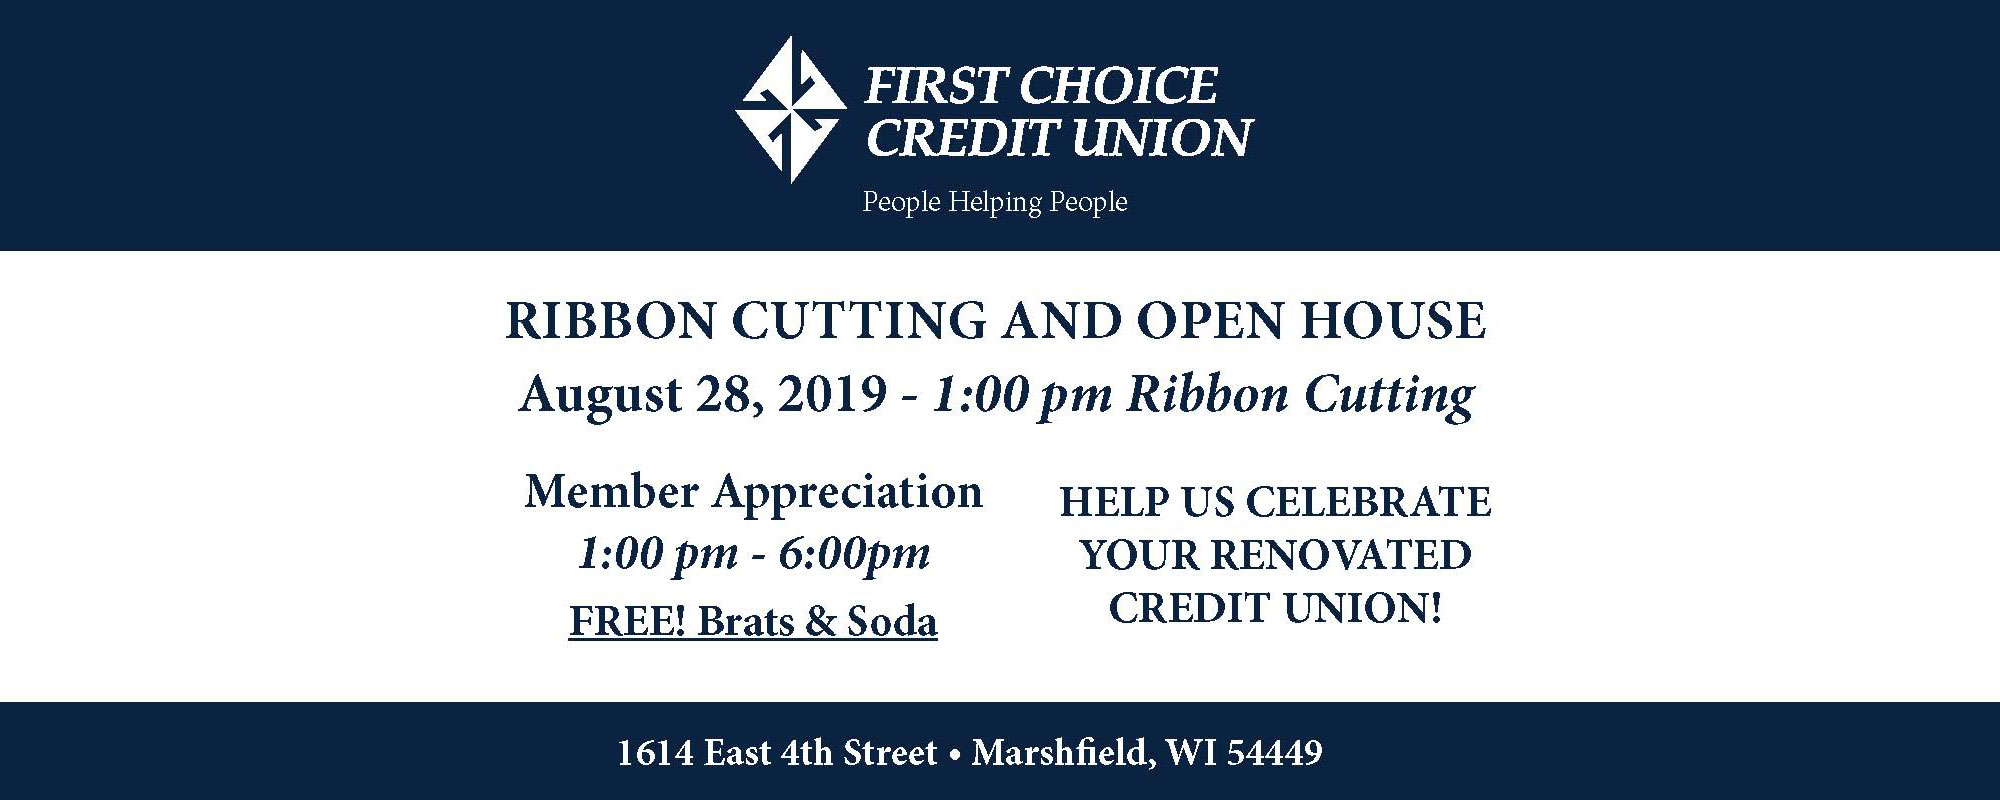 Ribbon cutting and open house August 28 at 1pm